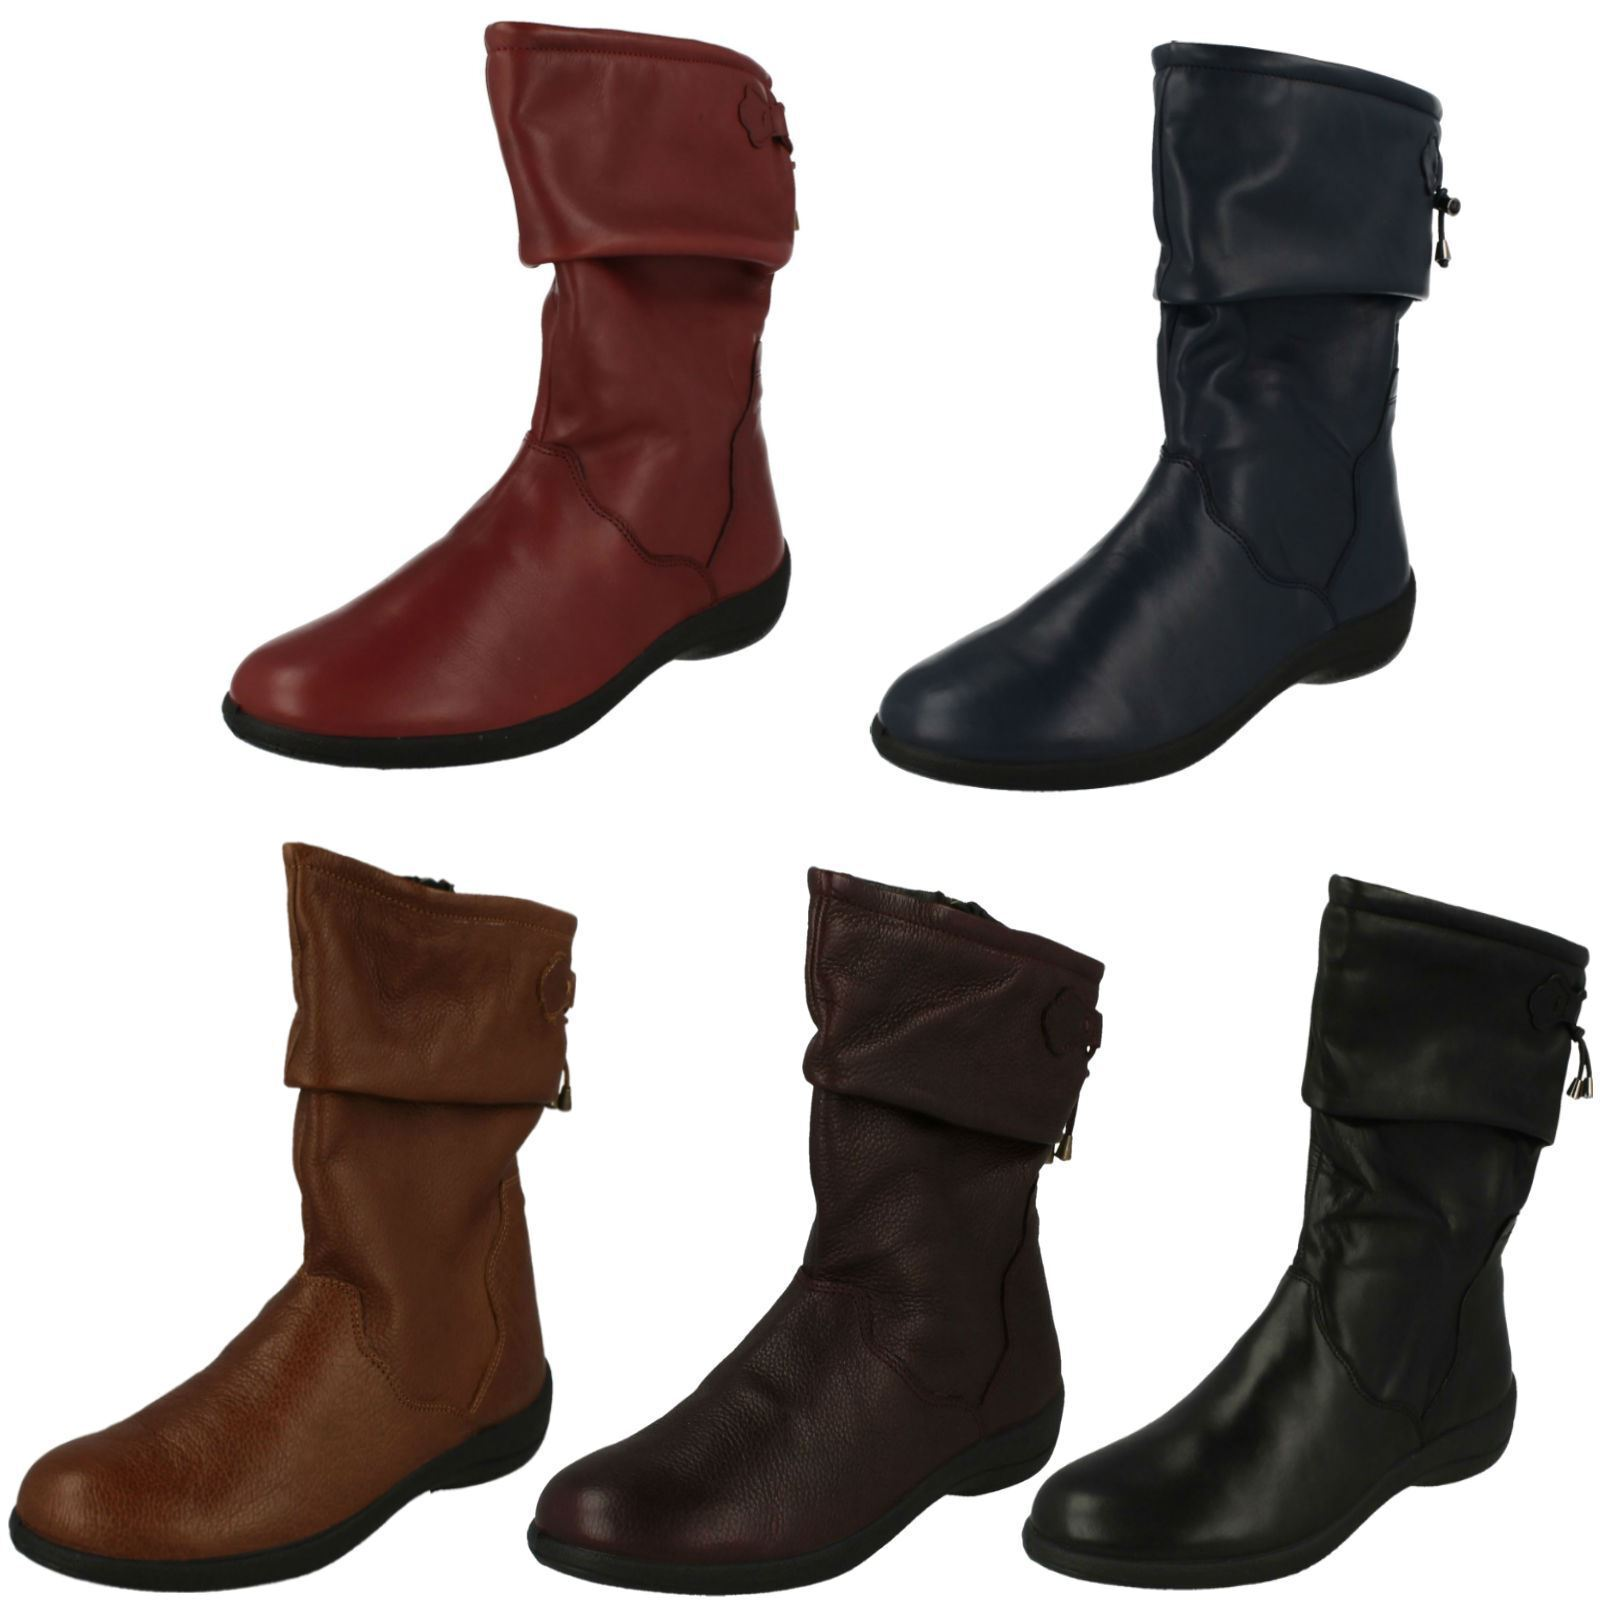 Ladies Padders Casual Calf High Wide Fitting Boots Regan